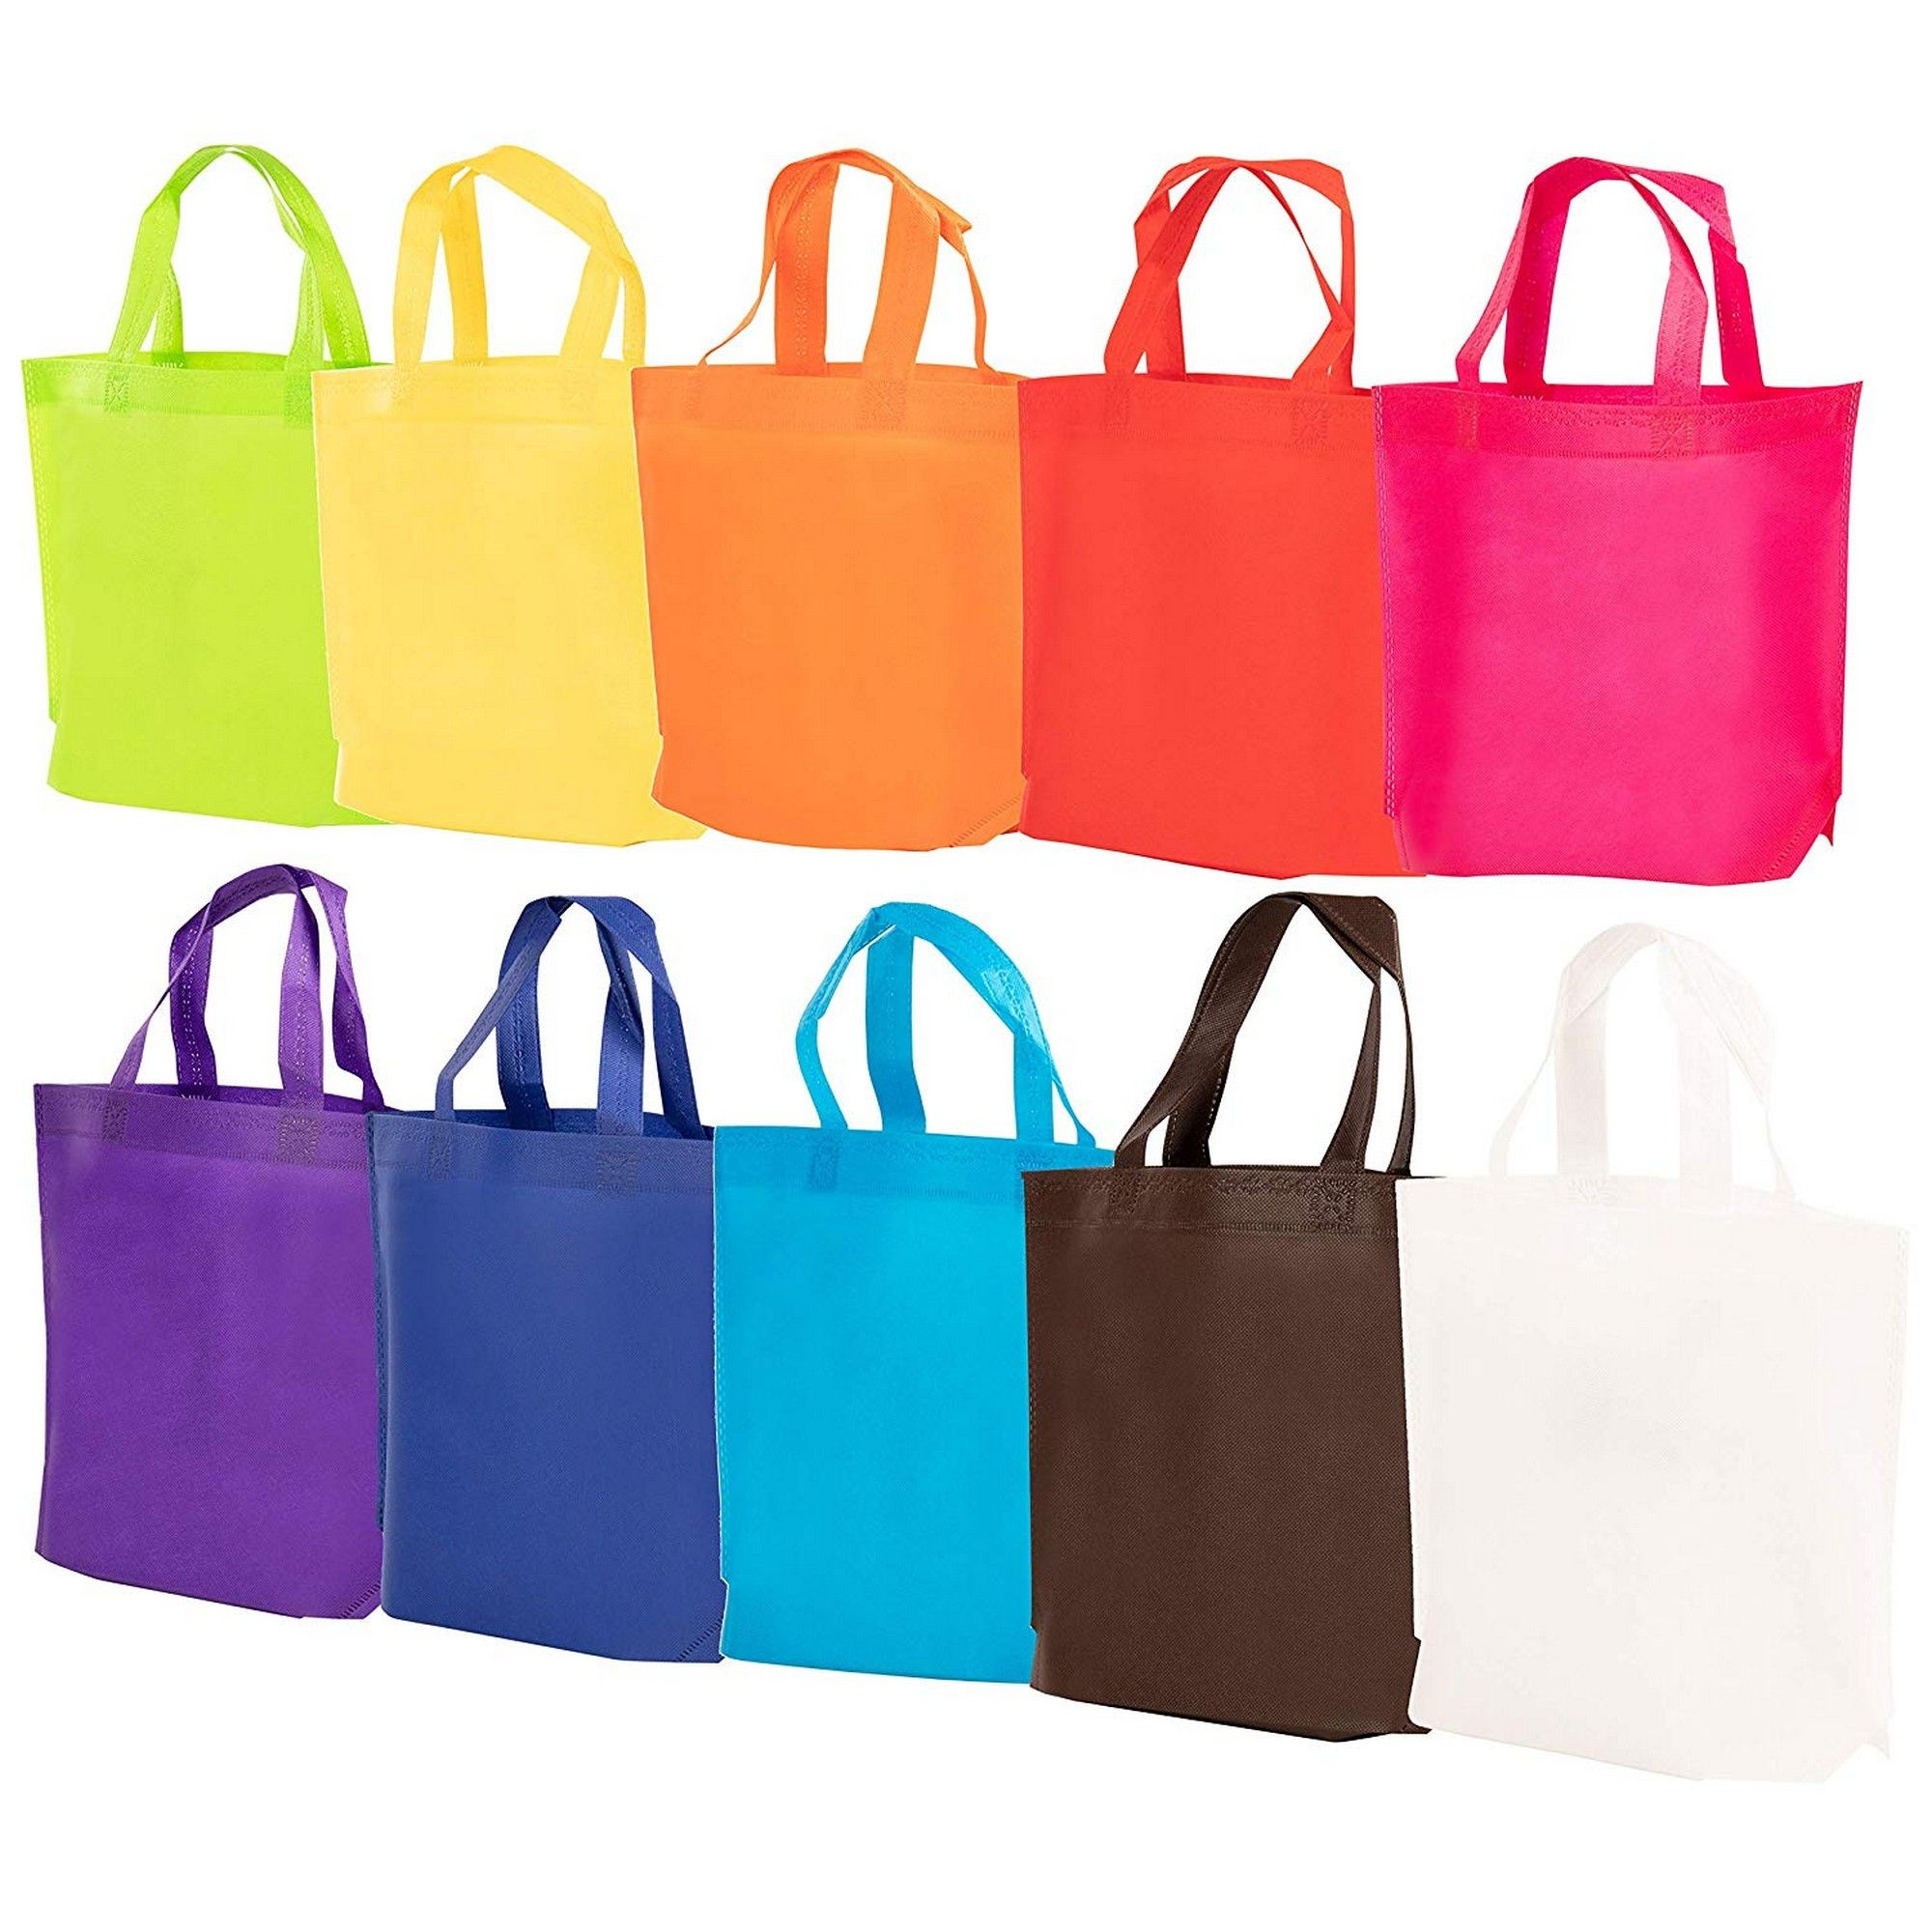 Minecraft Birthday Party Reusable Plastic Party Tote Bag